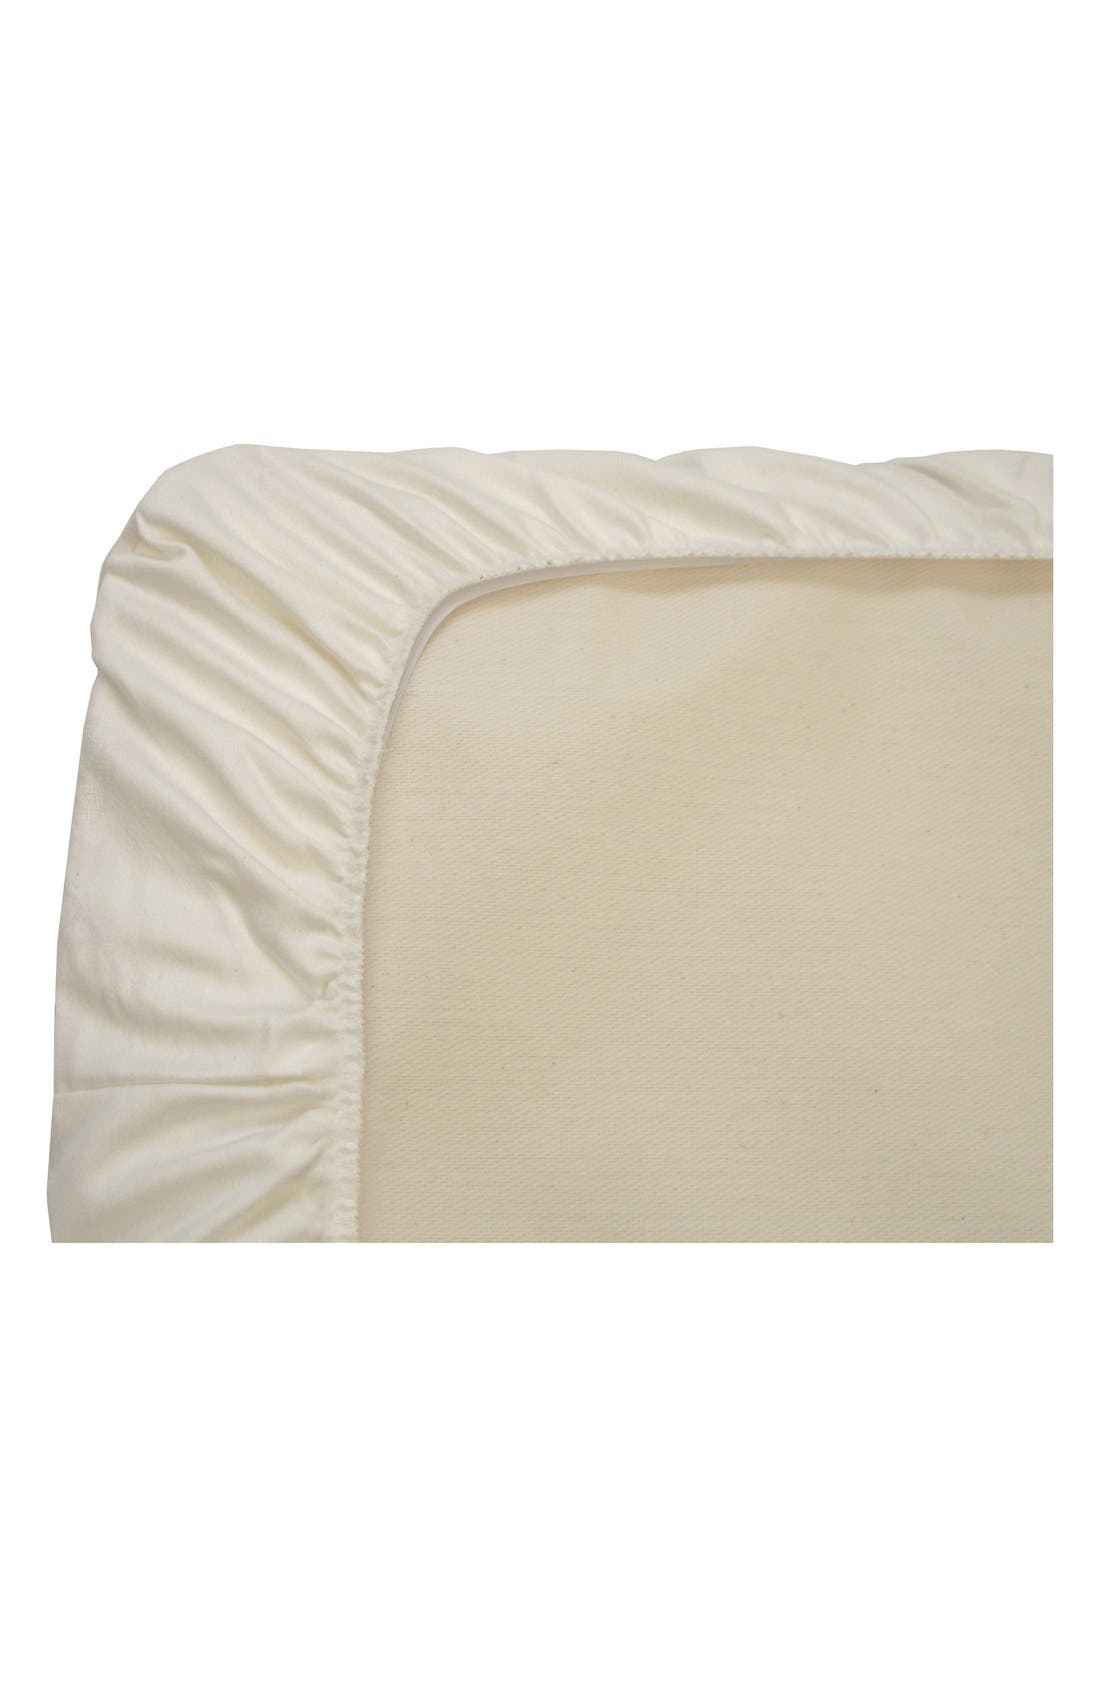 Organic Cotton Waterproof Fitted Crib Protector Pad,                             Alternate thumbnail 3, color,                             Natural